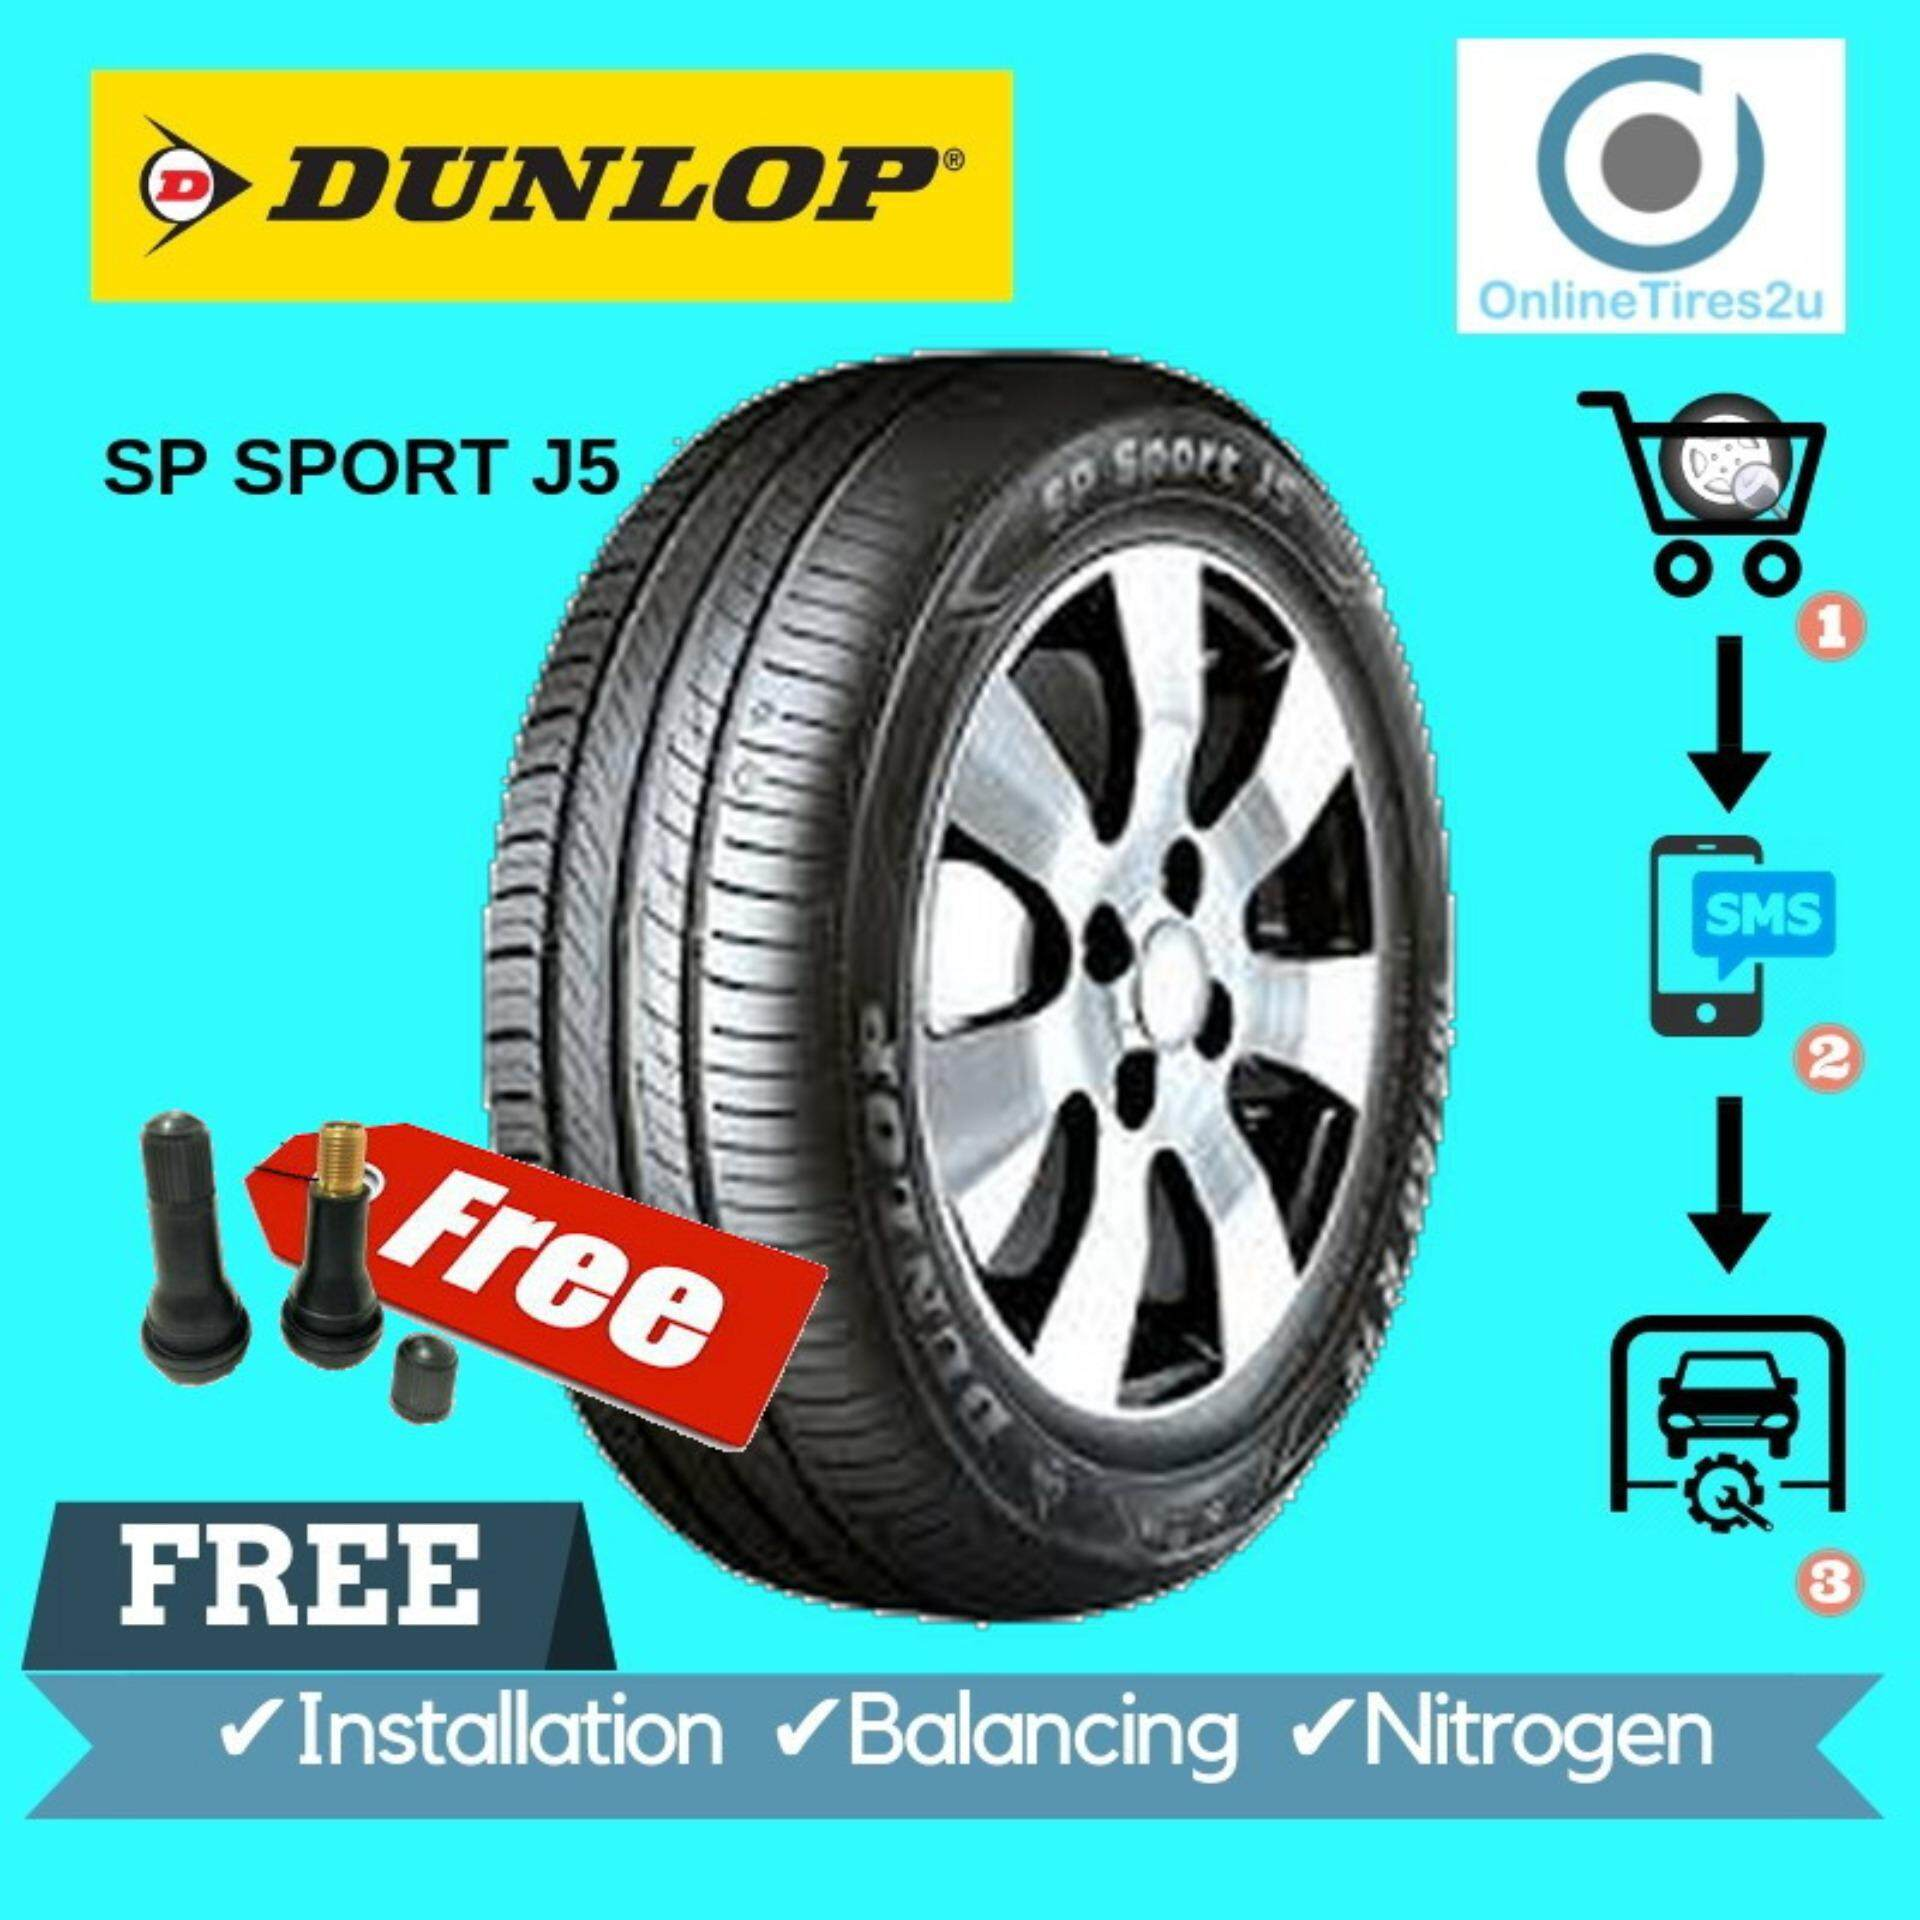 Dunlop Sp Sport J5 - 195/60r15 (with Installation) By Onlinetires2u.